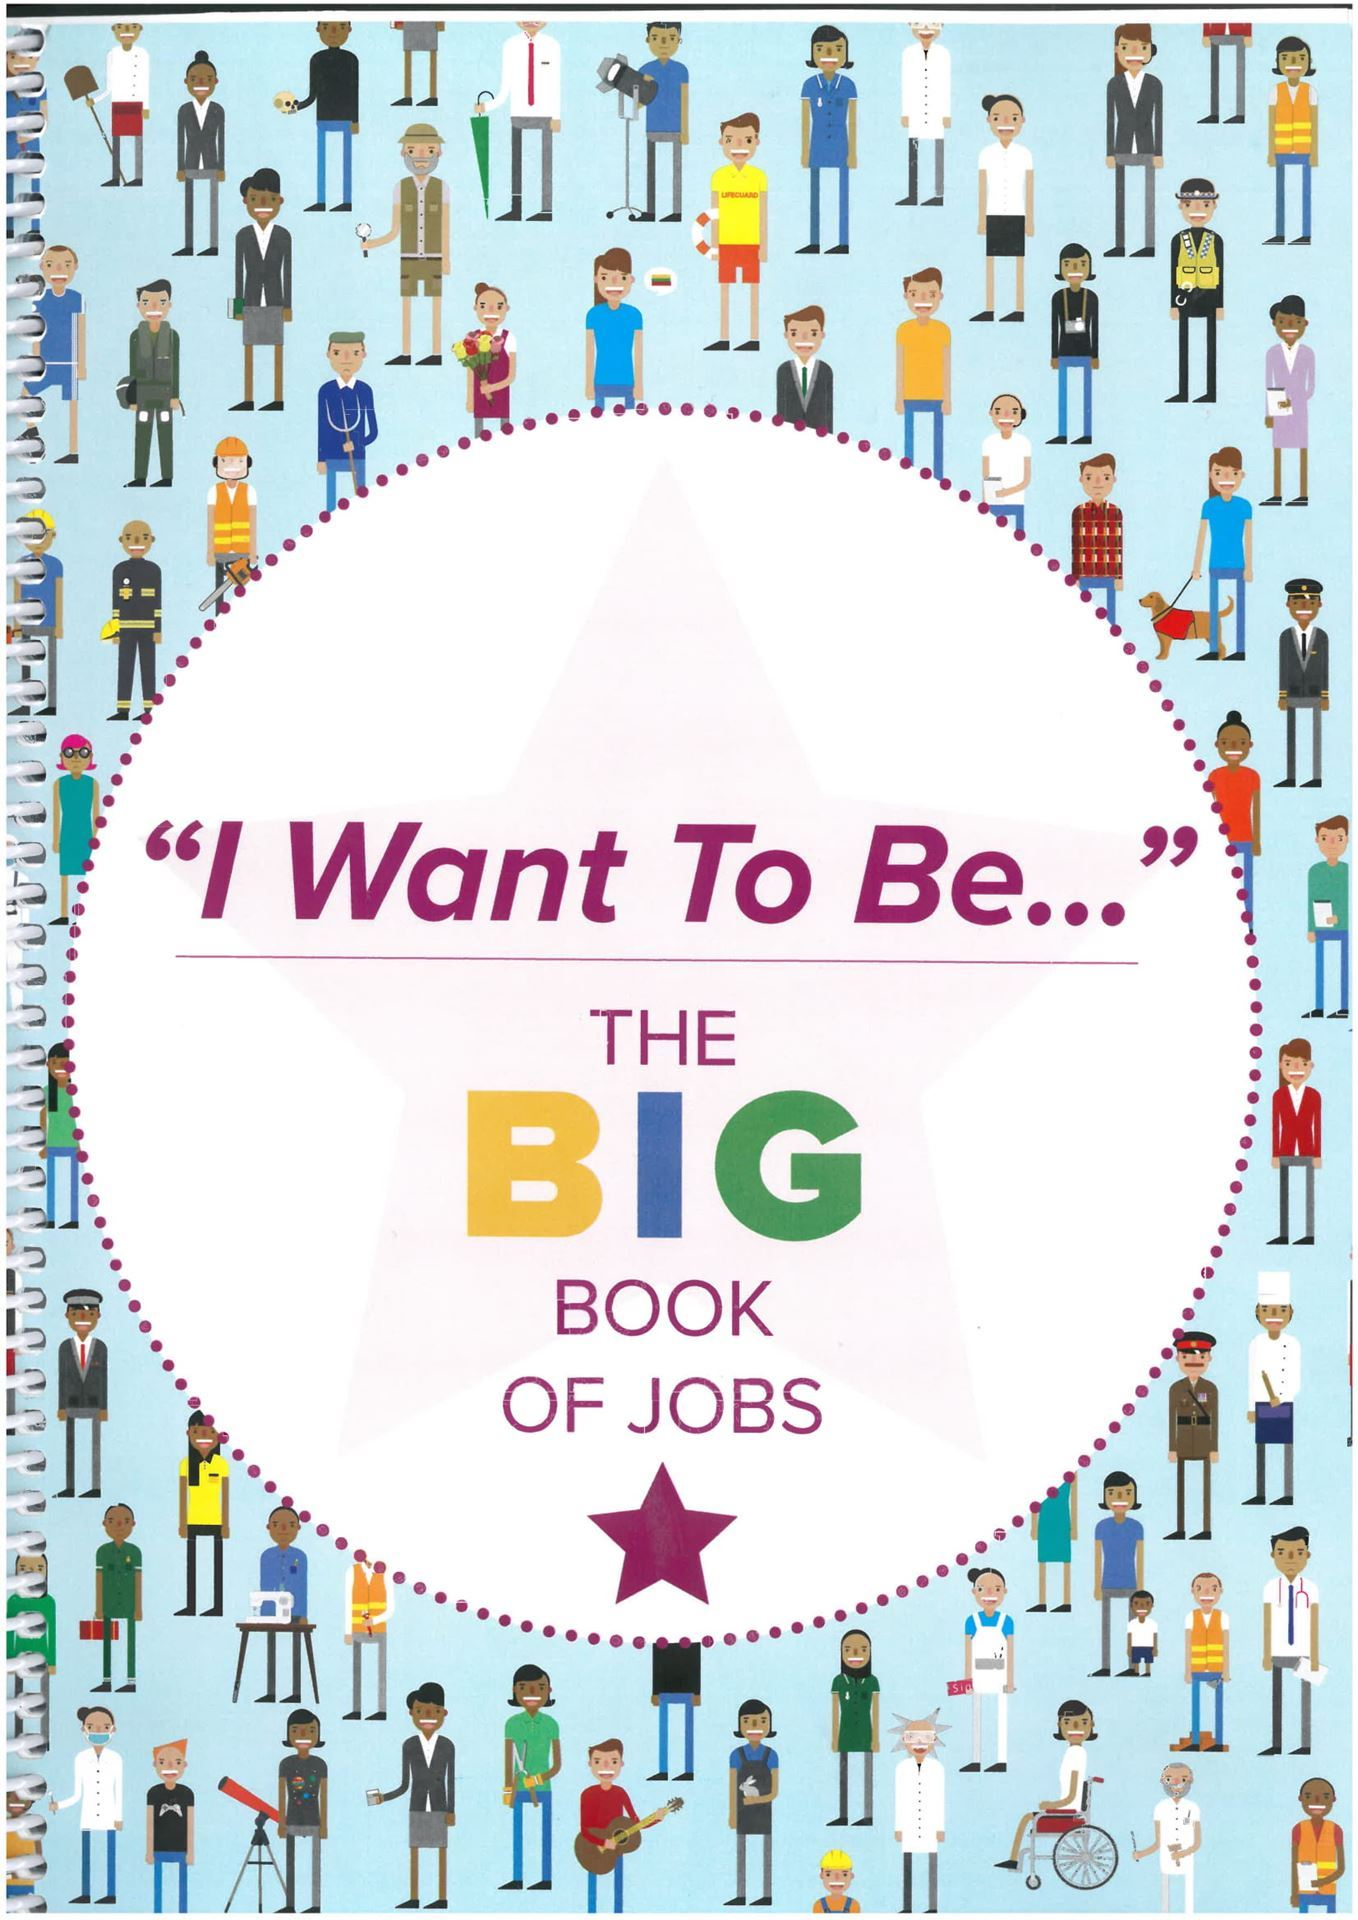 Prospects Education Resources I Want To Be The Big Book